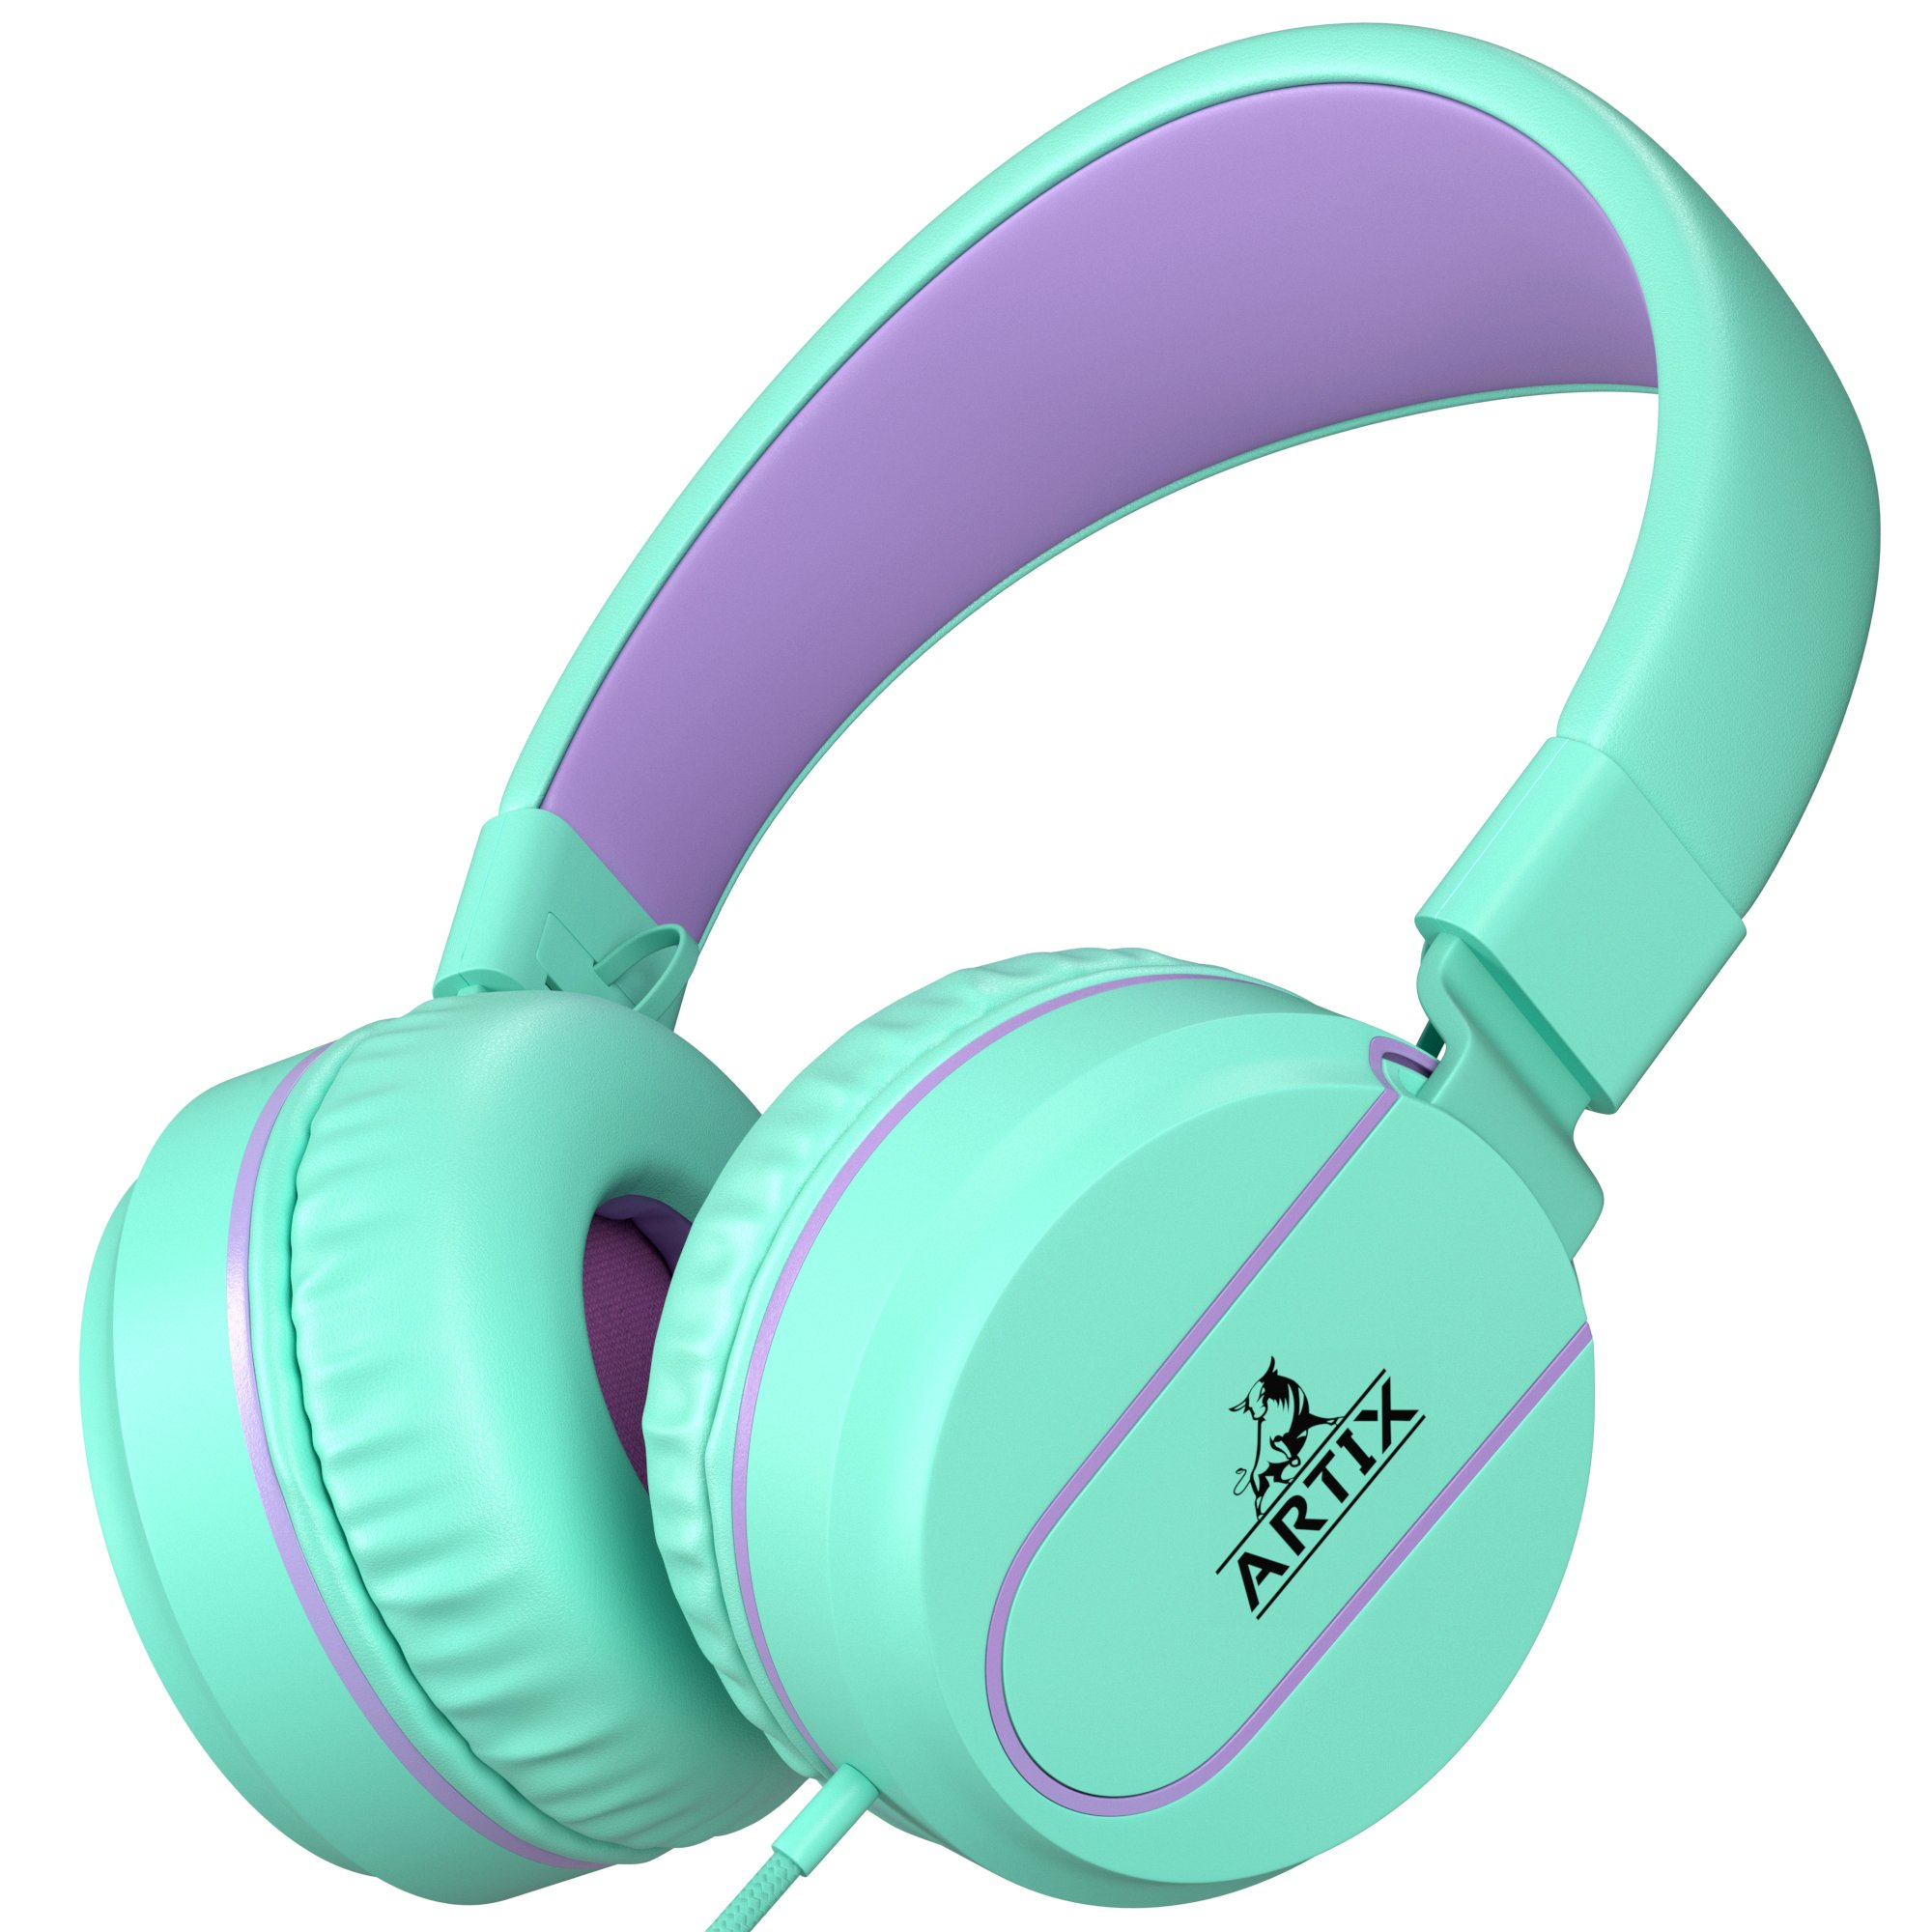 Artix Foldable On-Ear Adjustable Tangle-Free Wired Headphones, Compact Stereo Earphones with In-line Microphone and Controls for Children, Teen, Adult Head Phones for Running Sport, Travel- Turquoise by ARTIX